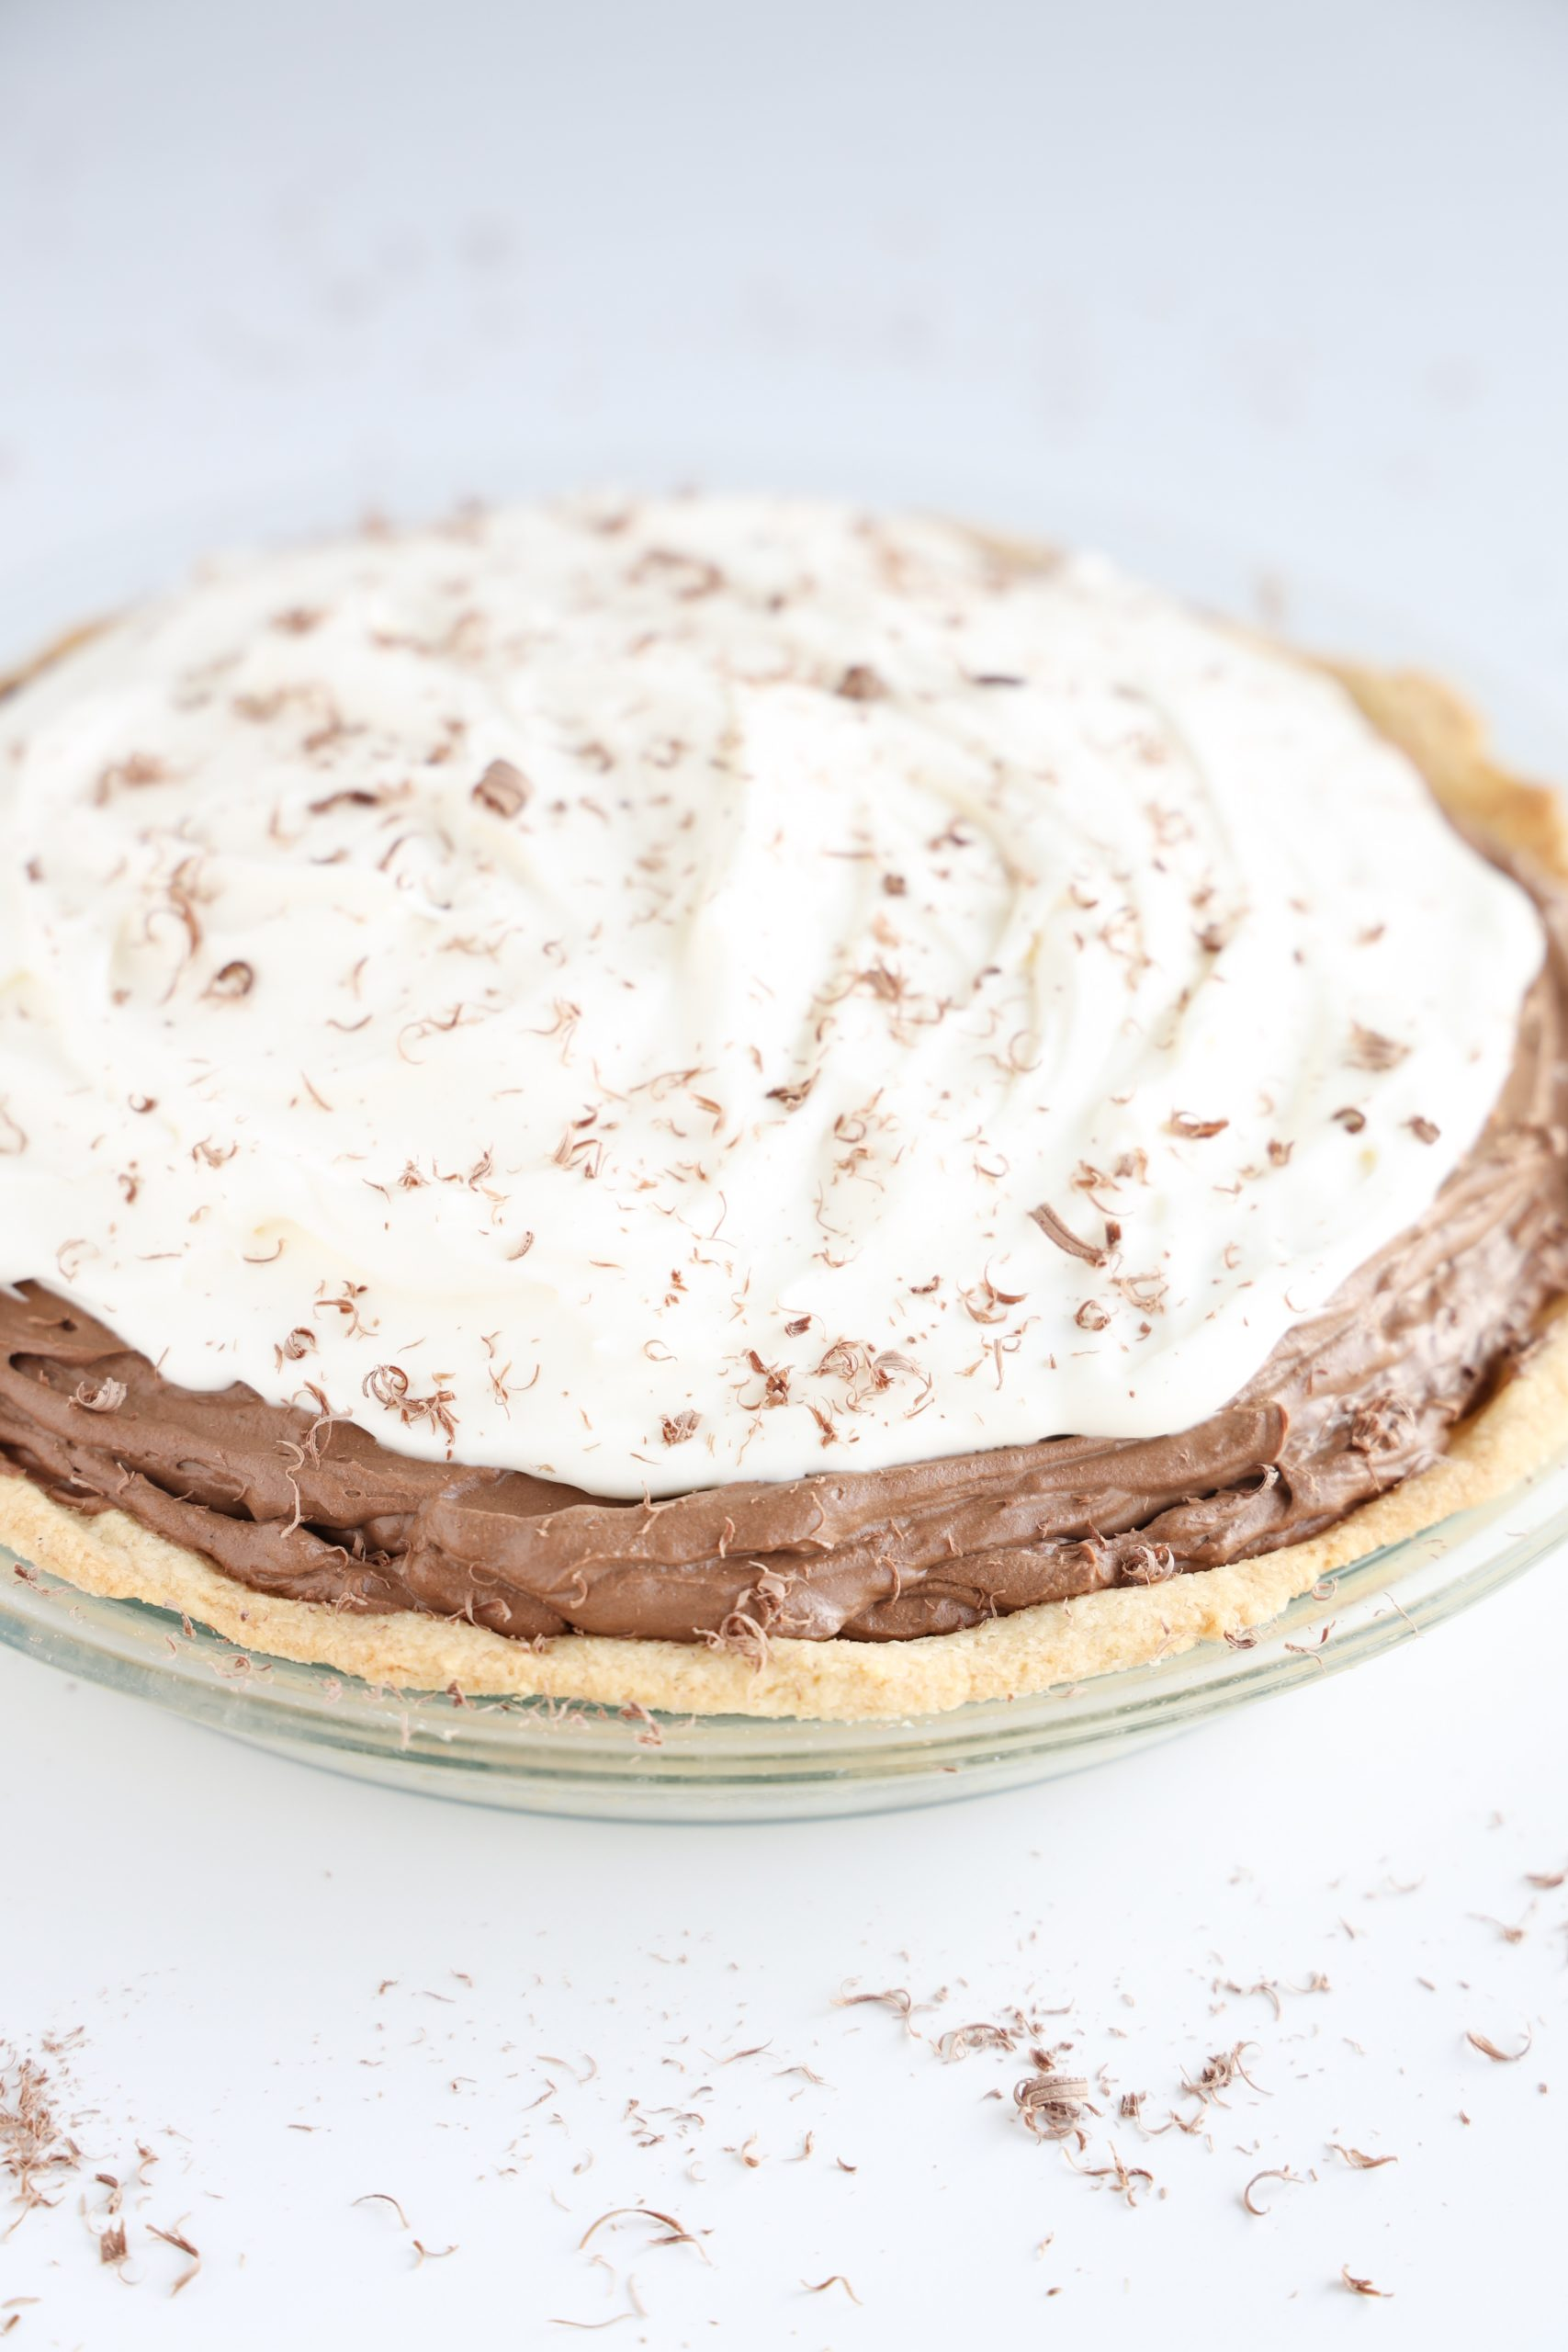 This keto and gluten-free chocolate pie filling is simply incredible.